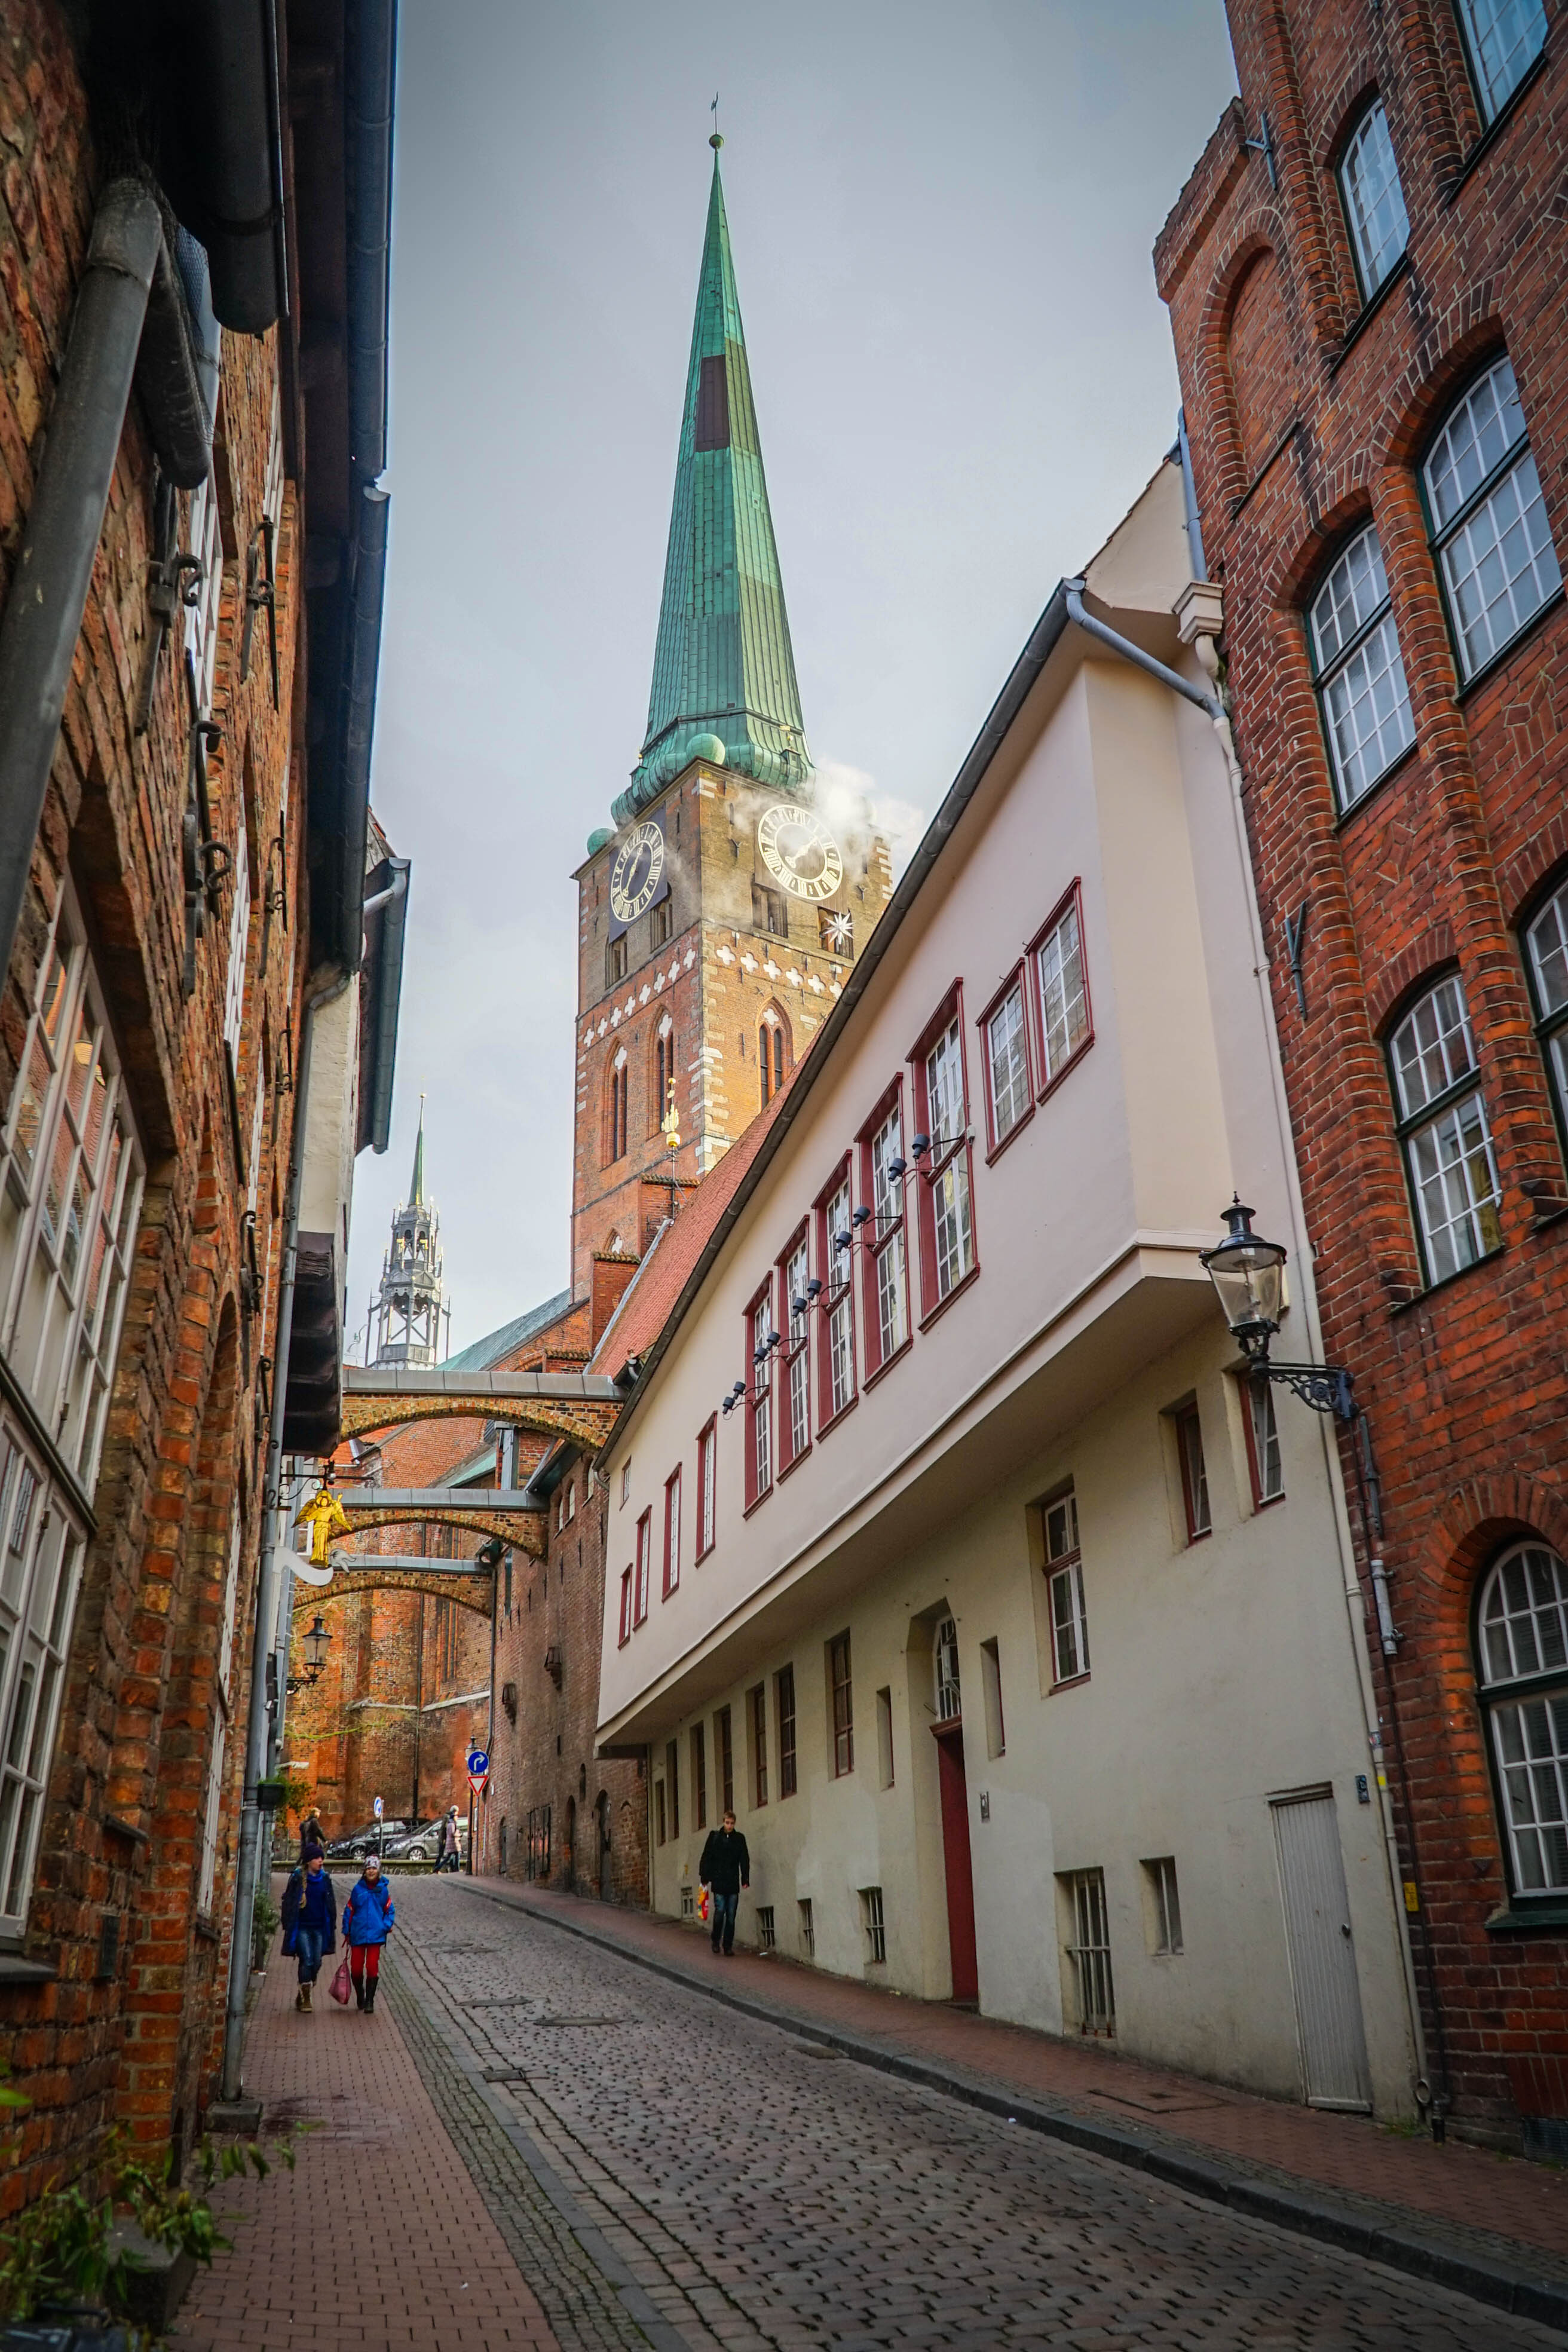 Streets of Lubeck Germany